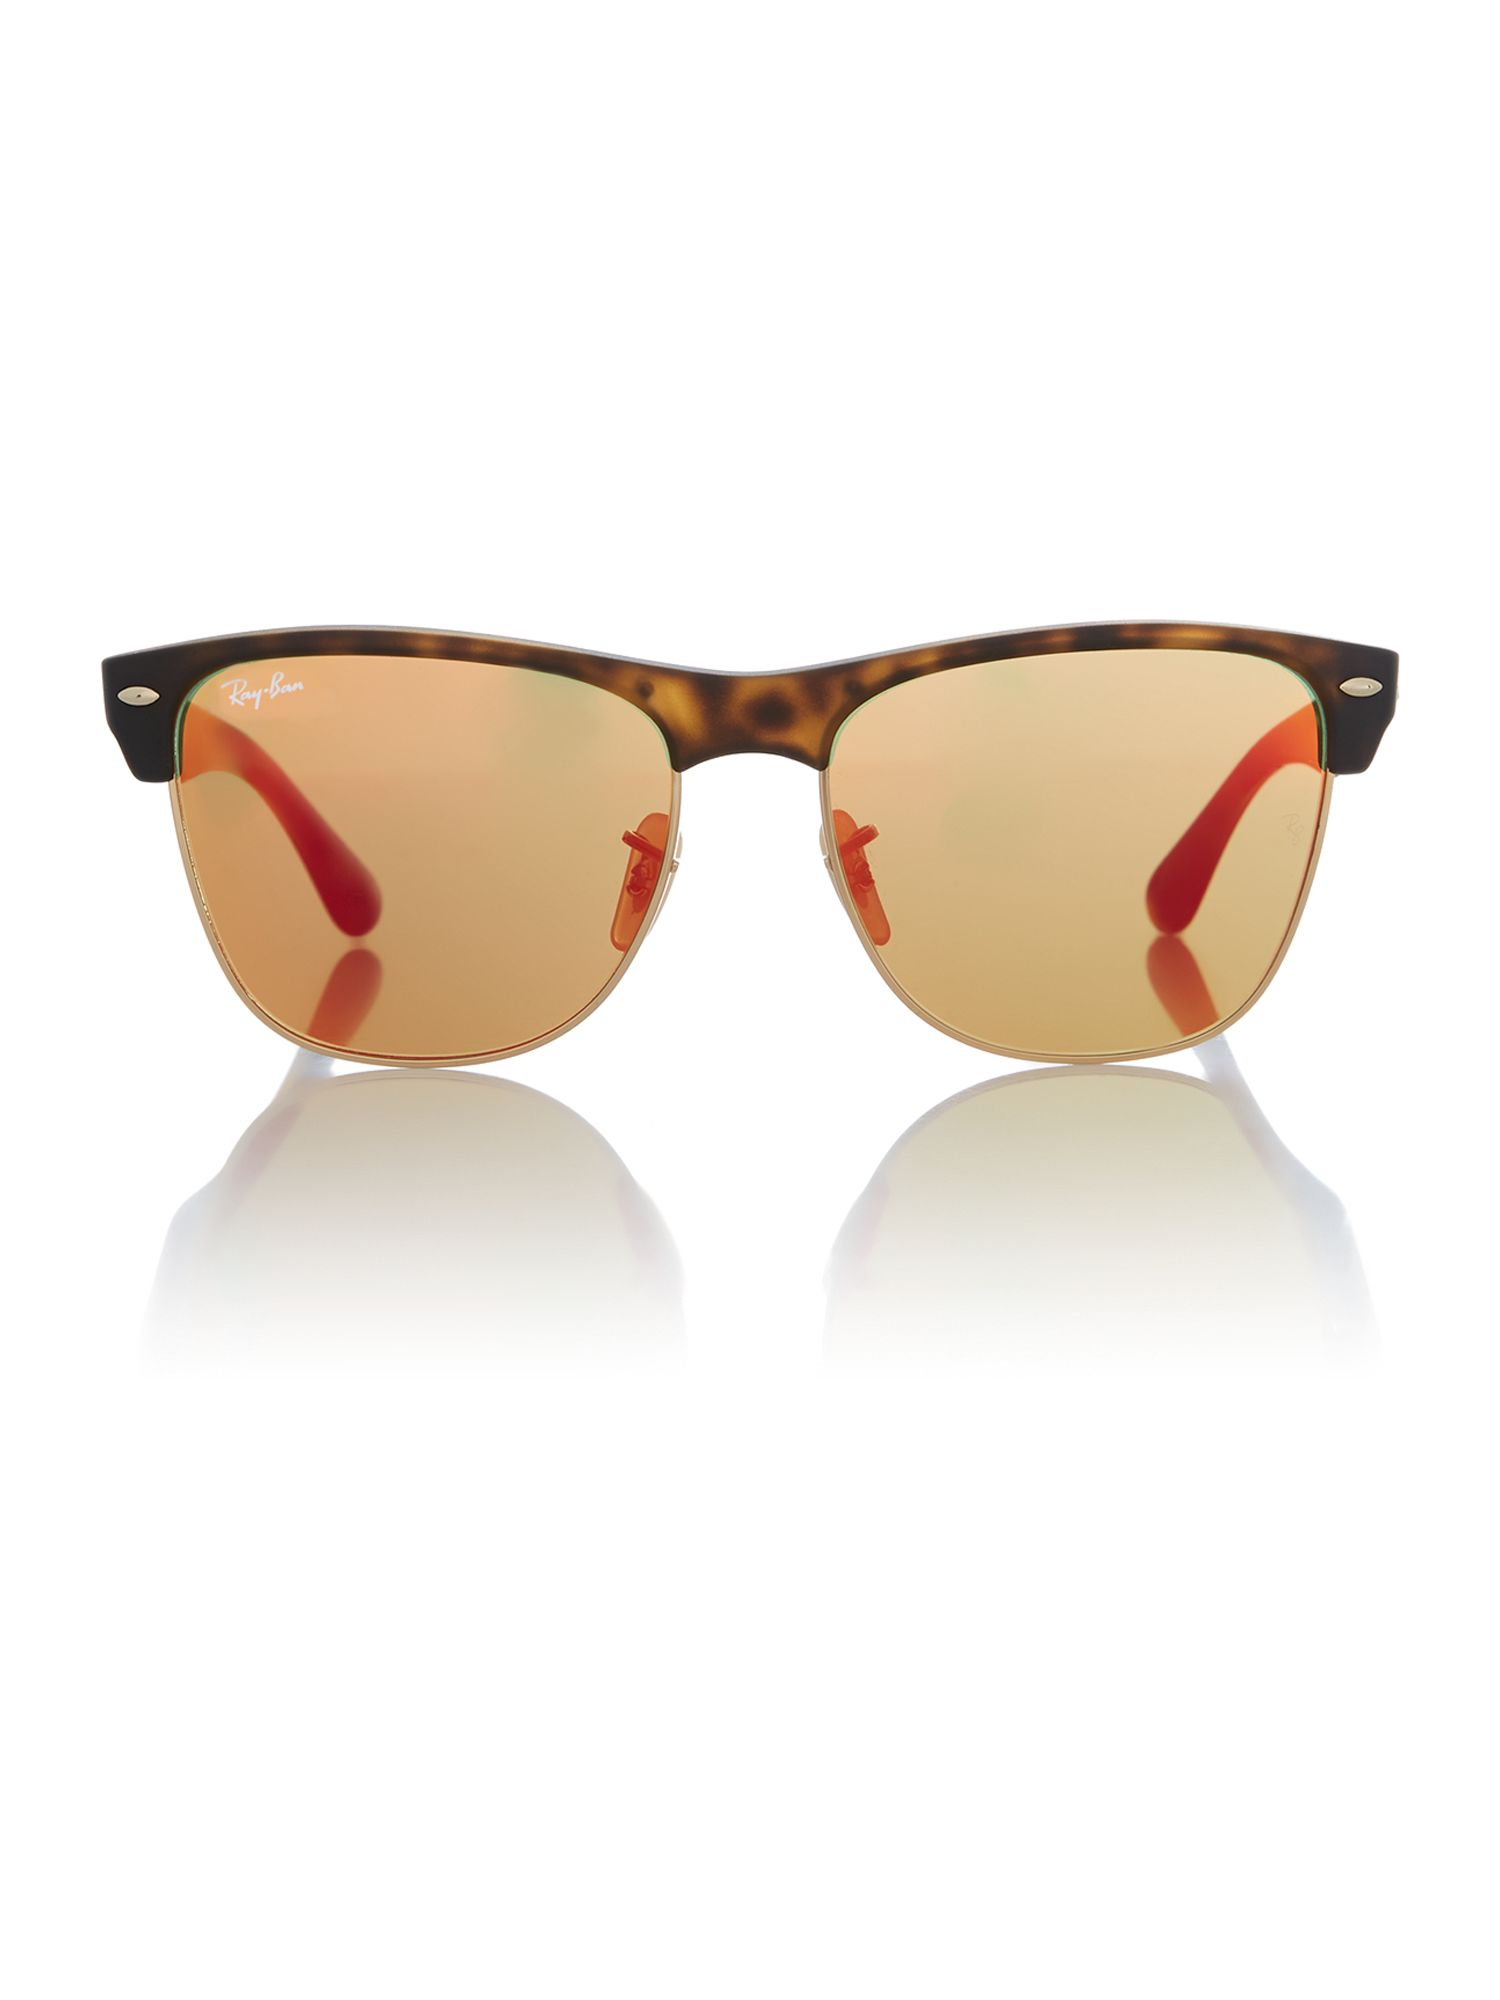 Rb4175 men`s square sunglasses